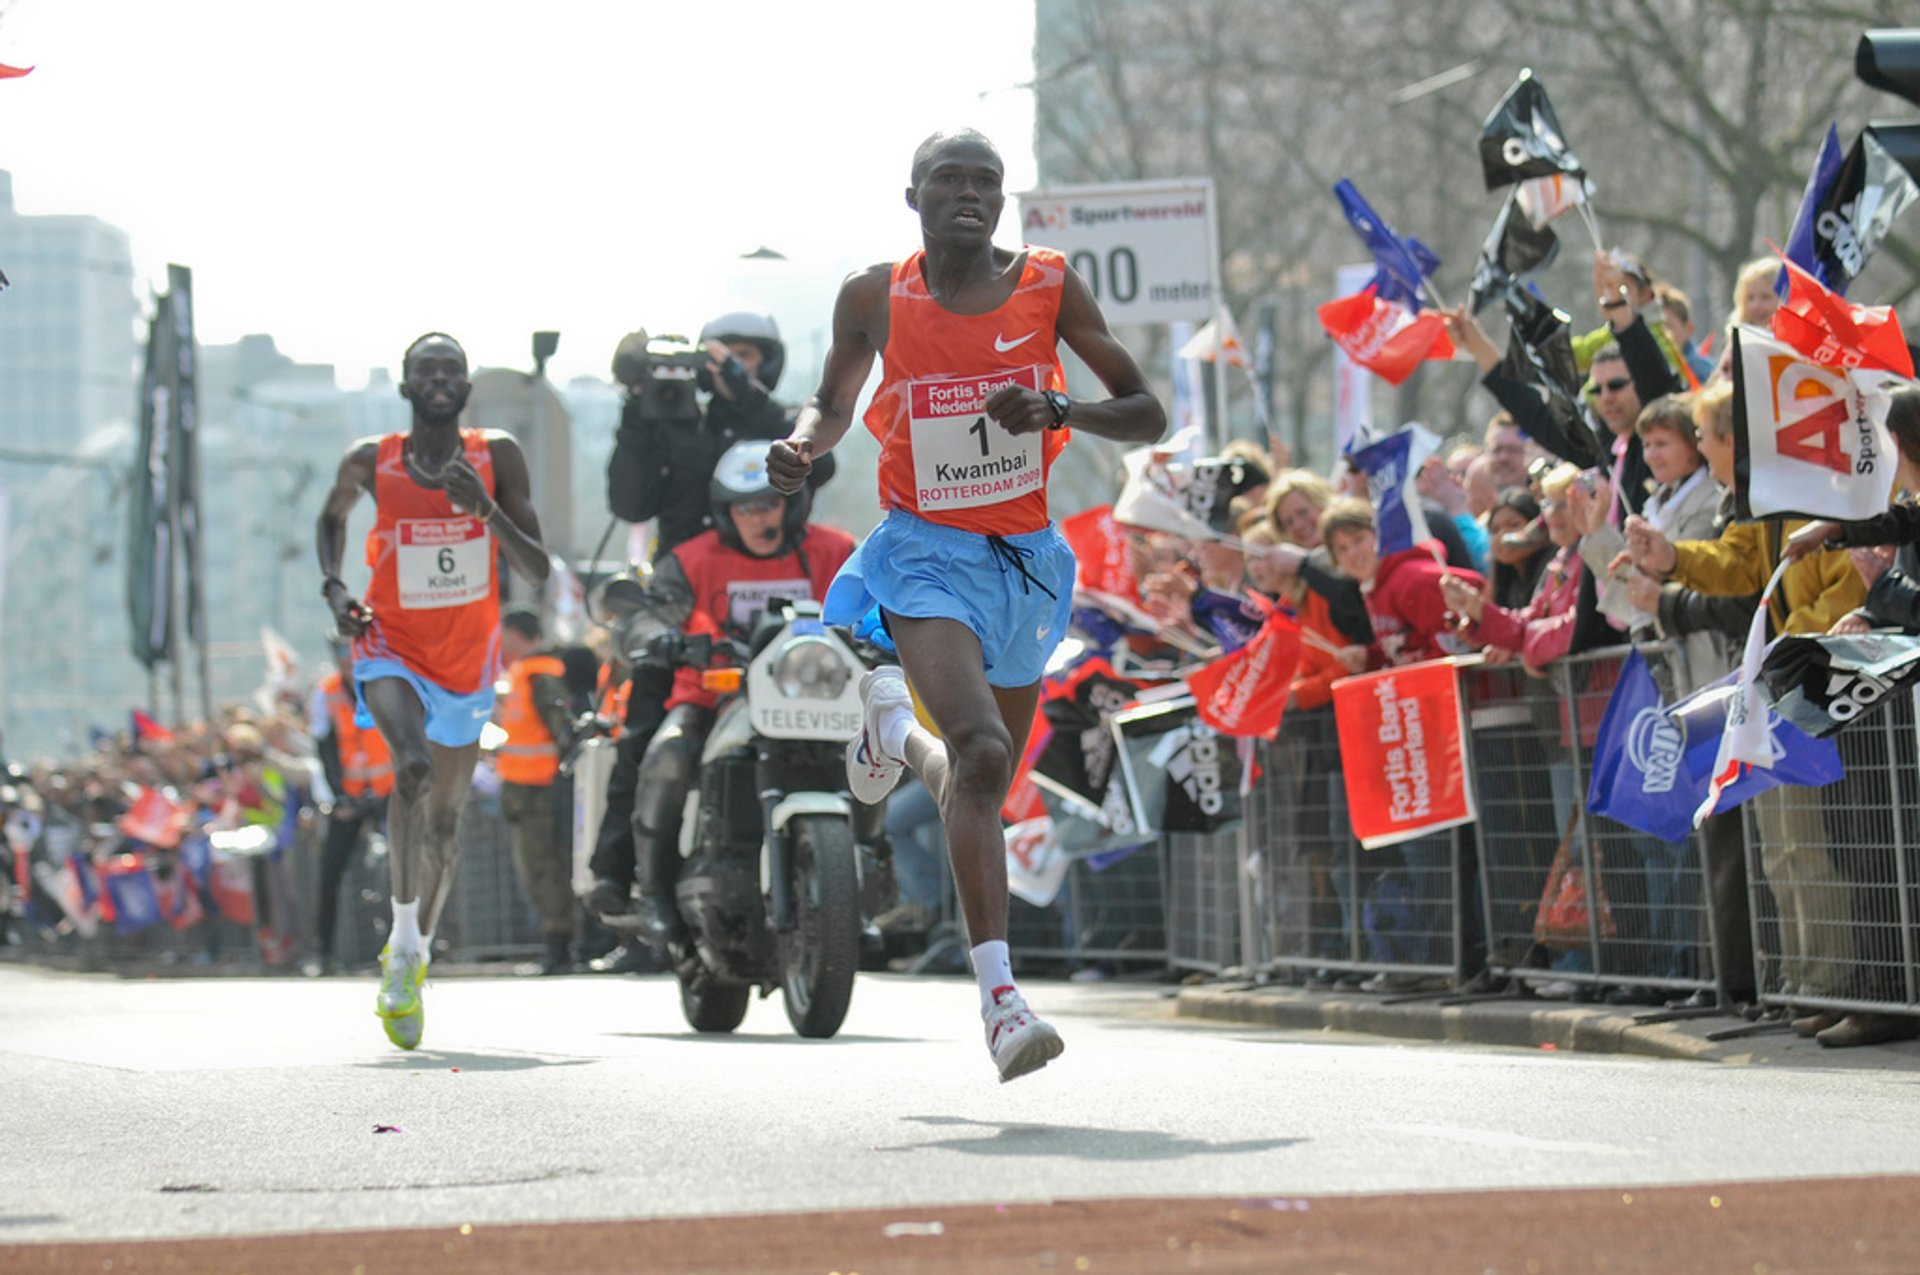 Rotterdam Marathon in The Netherlands 2019 - Best Time